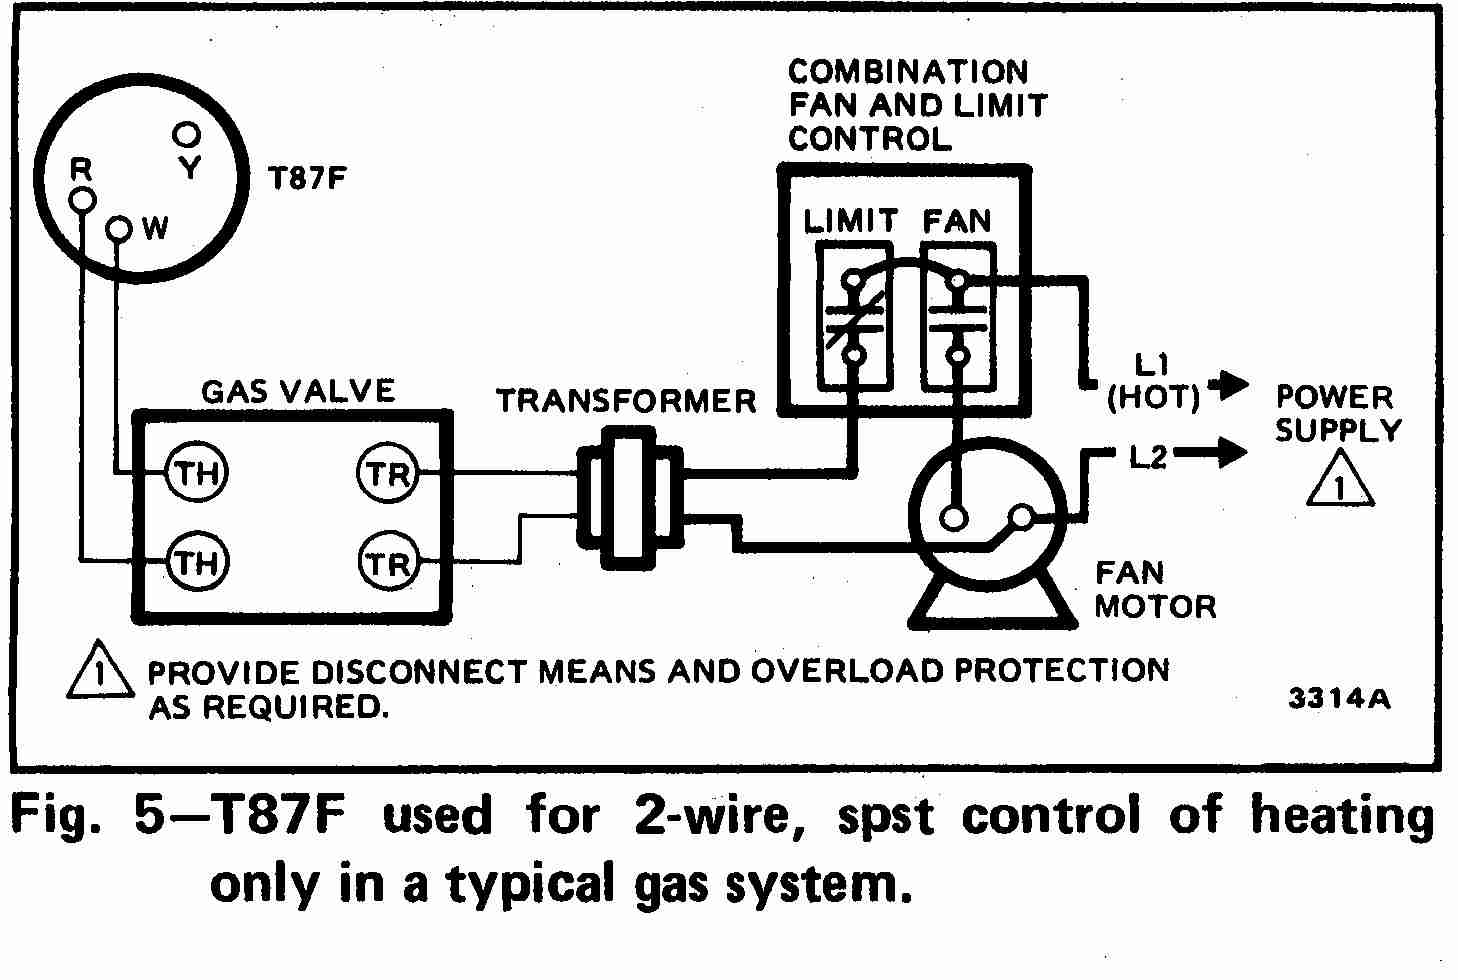 TT_T87F_0002_2Wg_DJF room thermostat wiring diagrams for hvac systems wall heater wiring diagram at pacquiaovsvargaslive.co